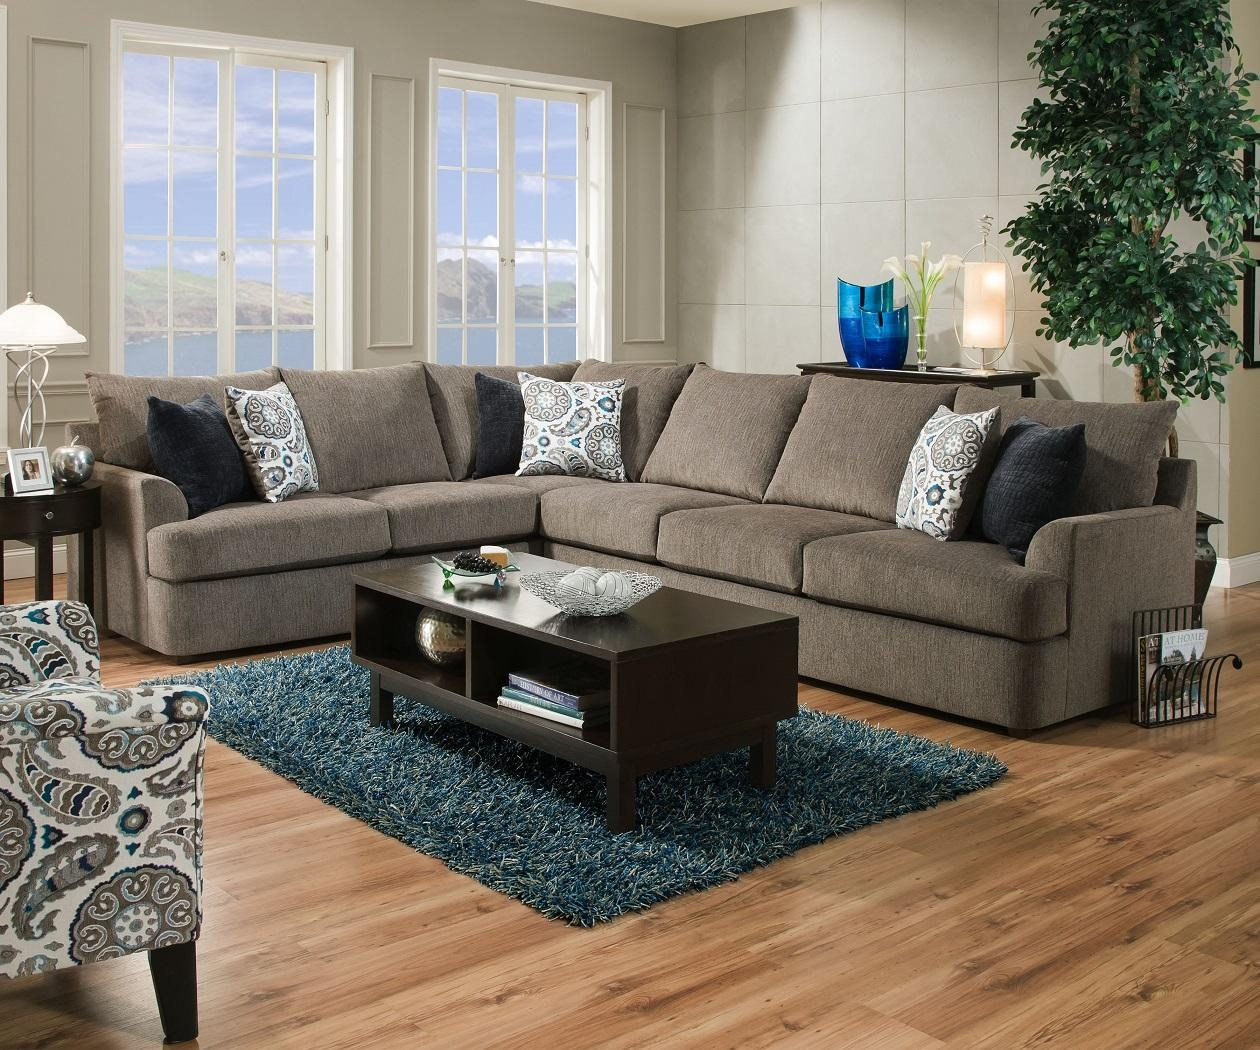 United Simmons Grandstand 8540 Beautyrest Grey Sectional Sofa Intended For Simmons Sofas (Image 20 of 20)